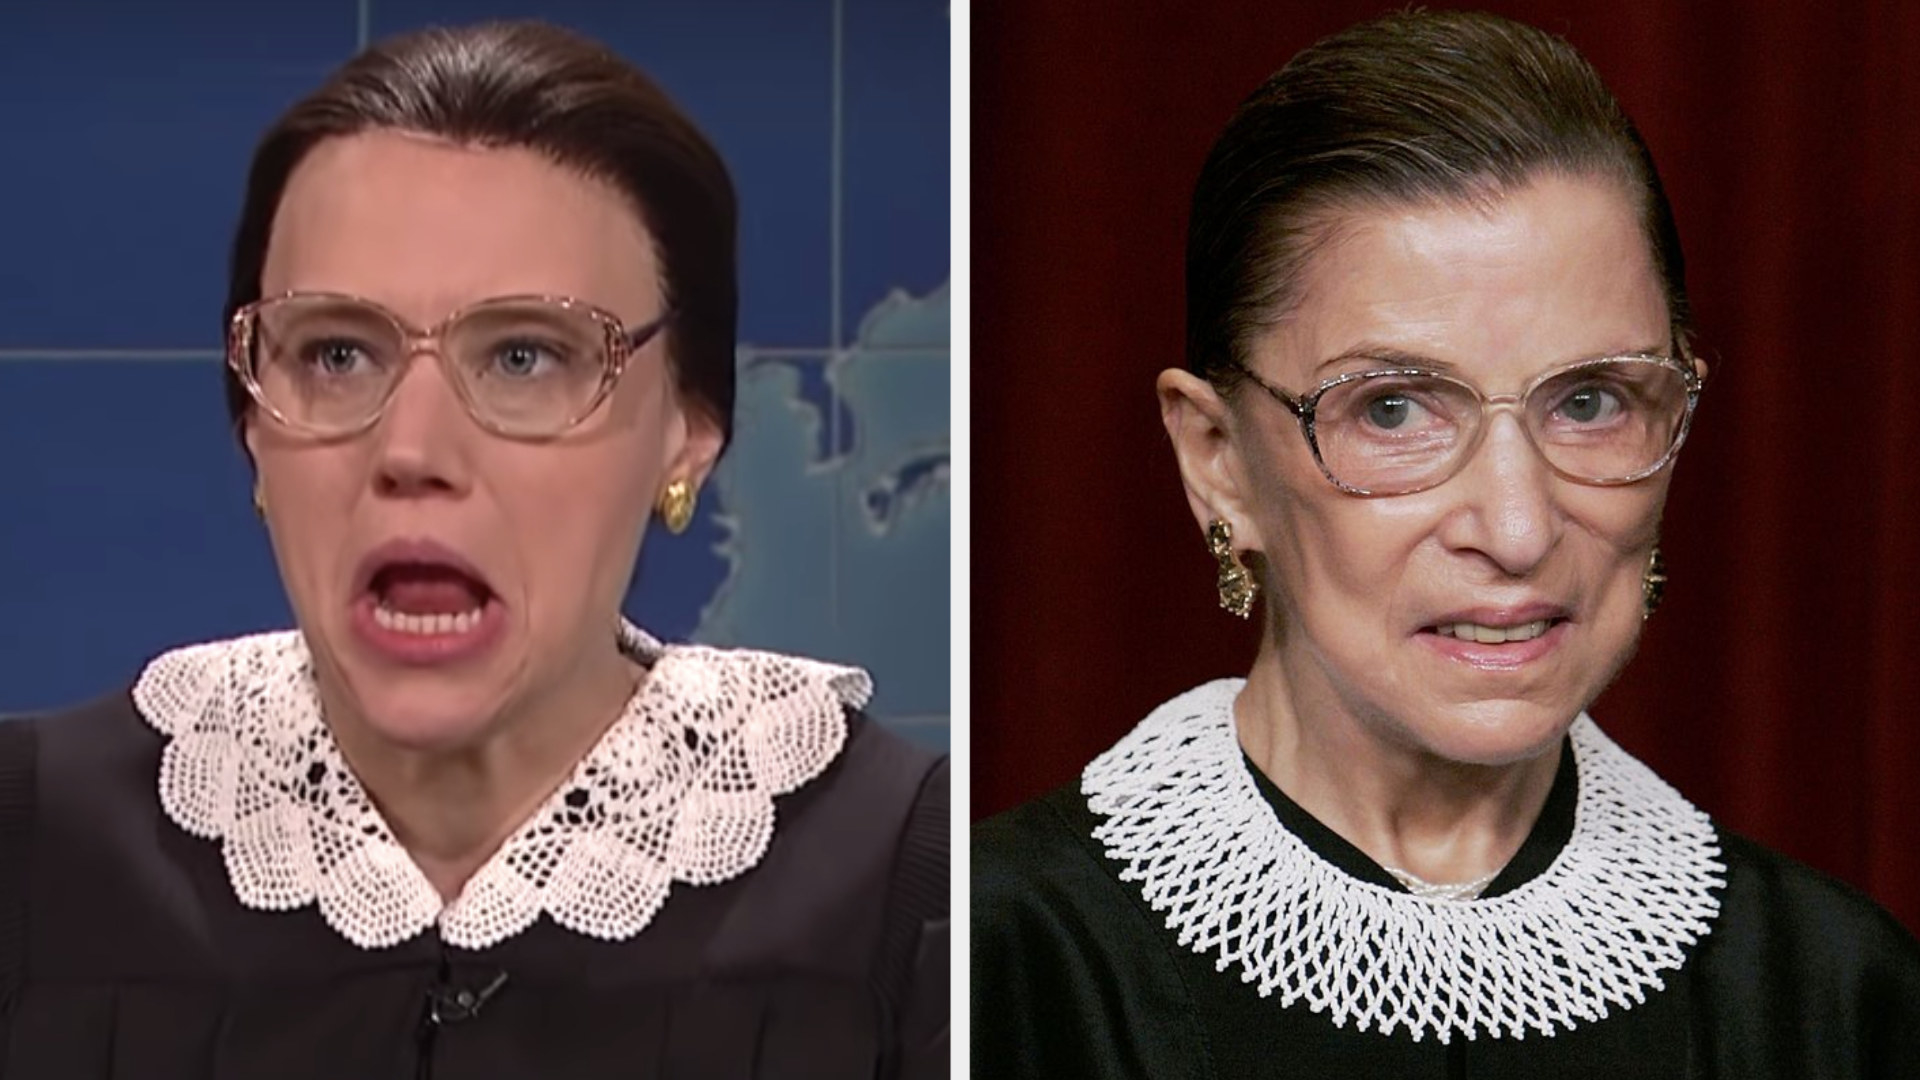 Kate McKinnon in a black robe with a white lace collar side by side with RBG